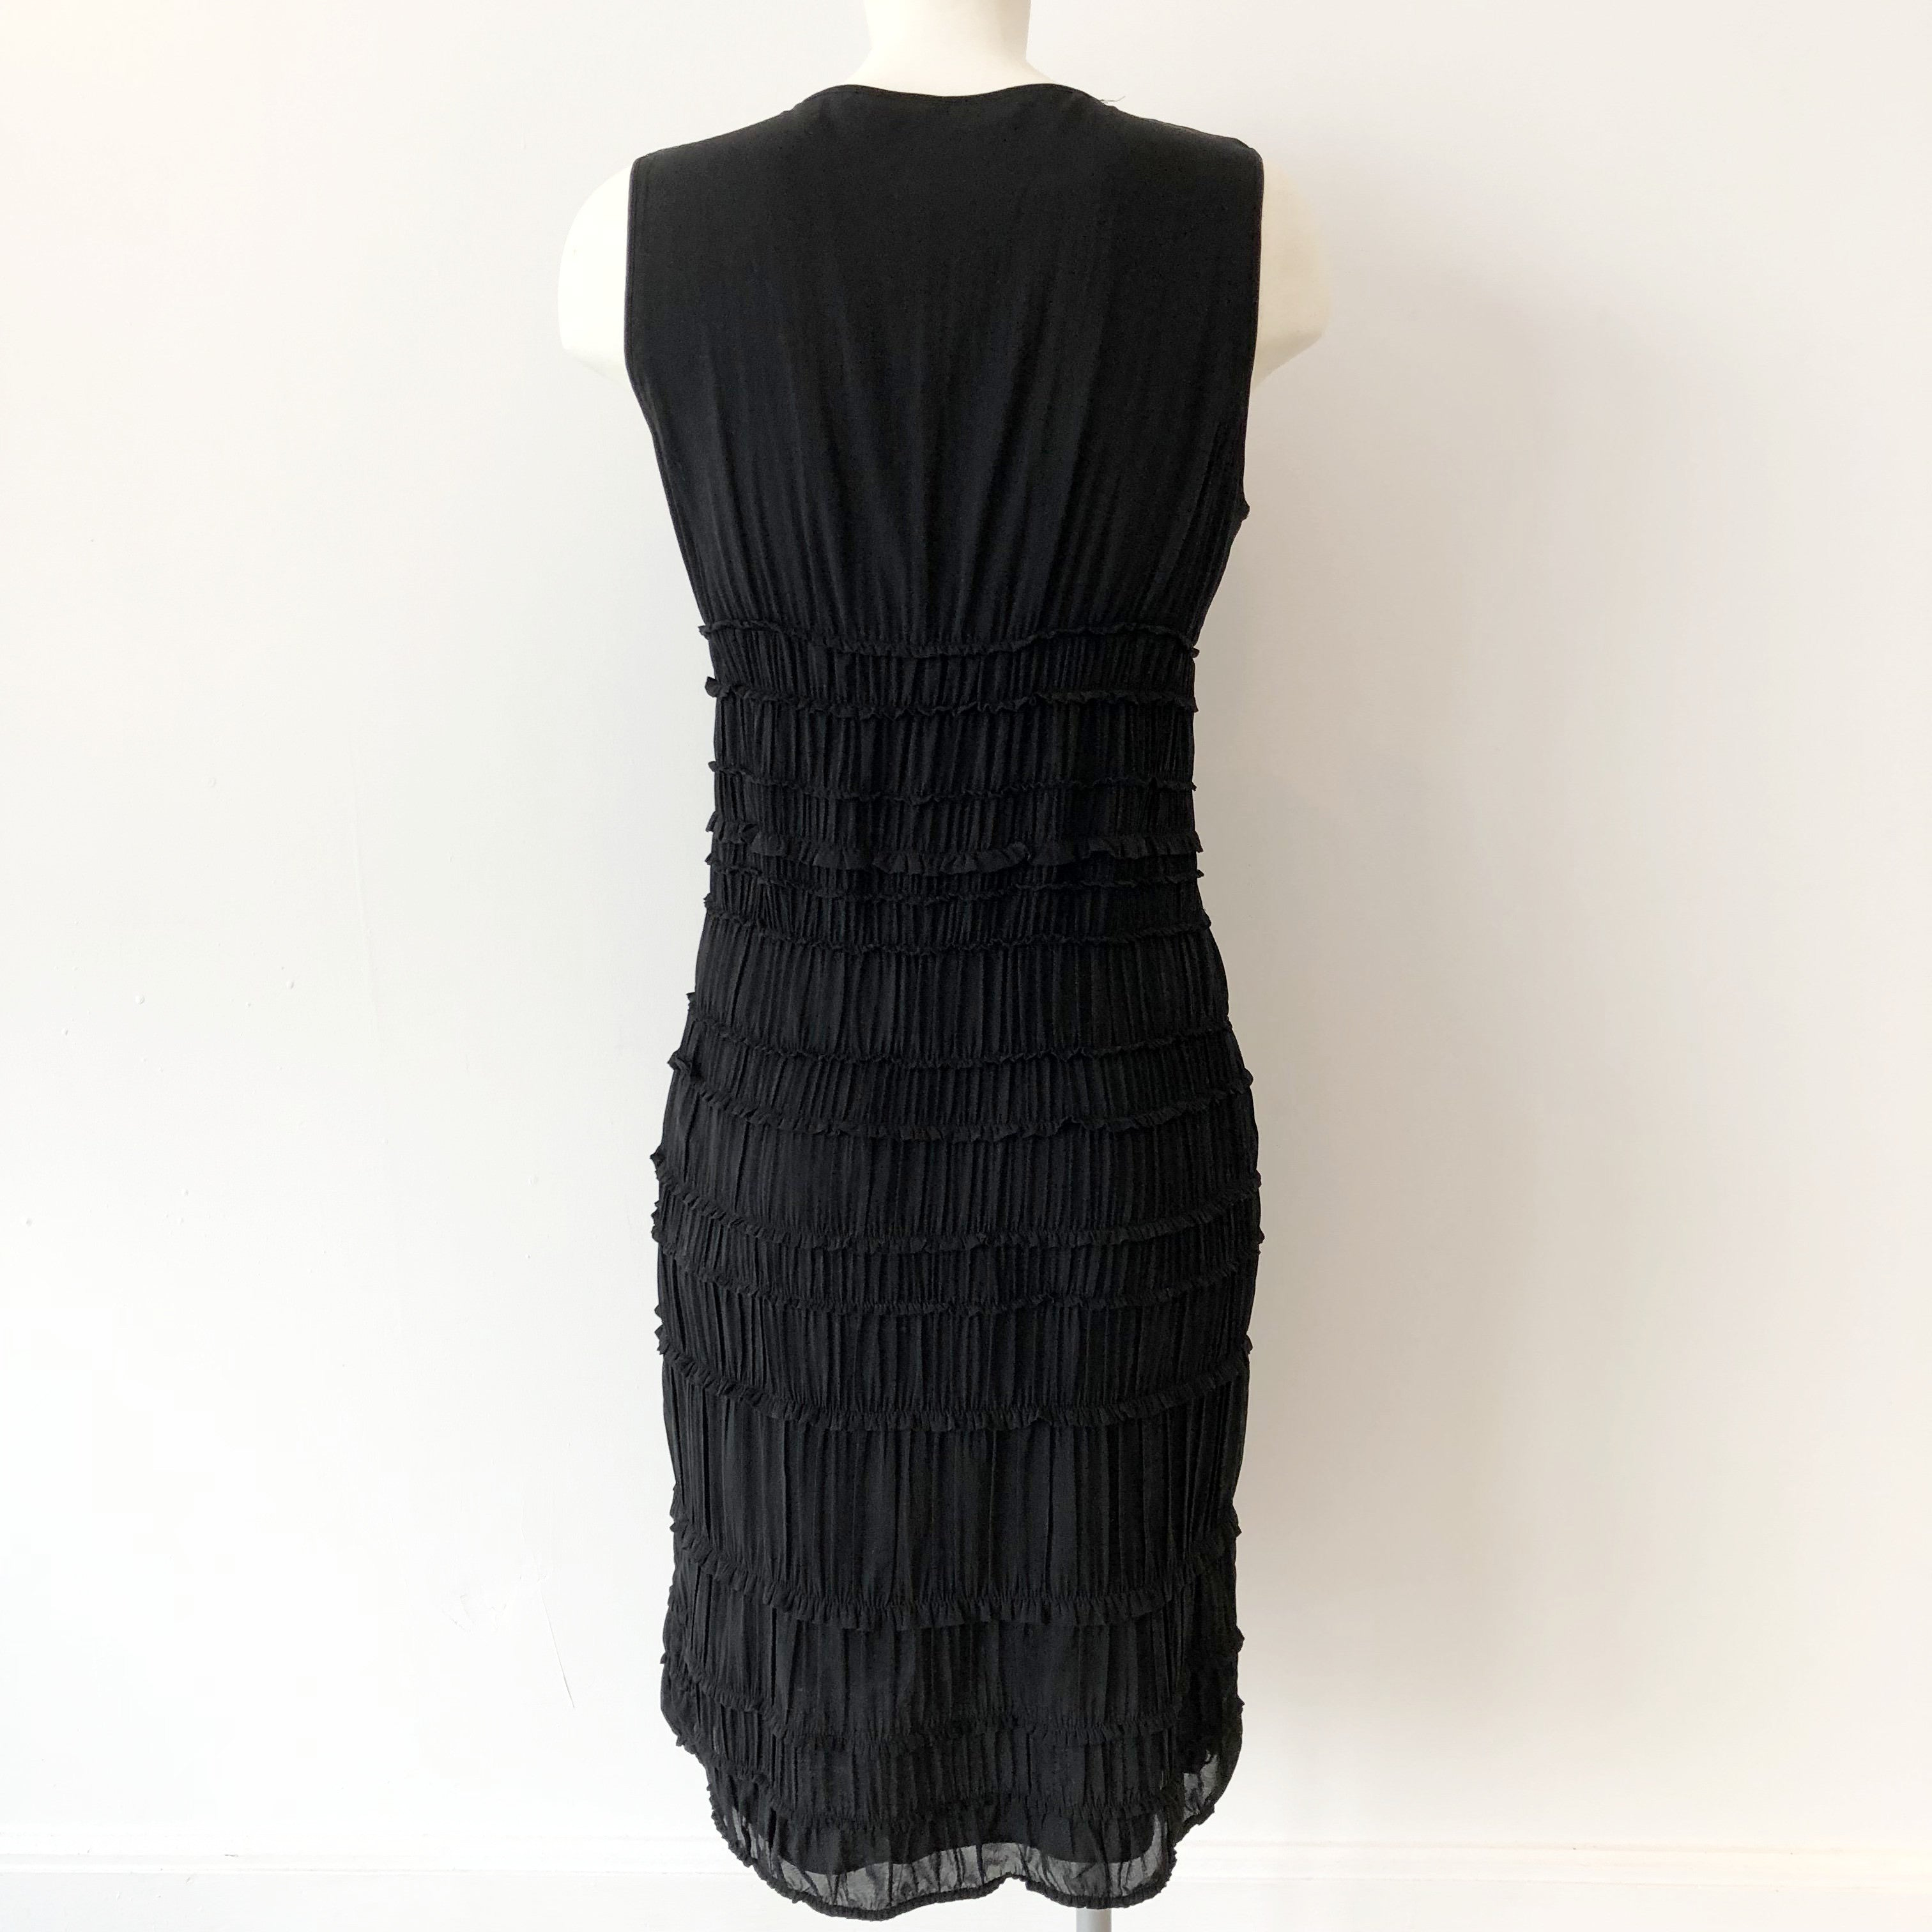 Authentic BURBERRY Black Dress